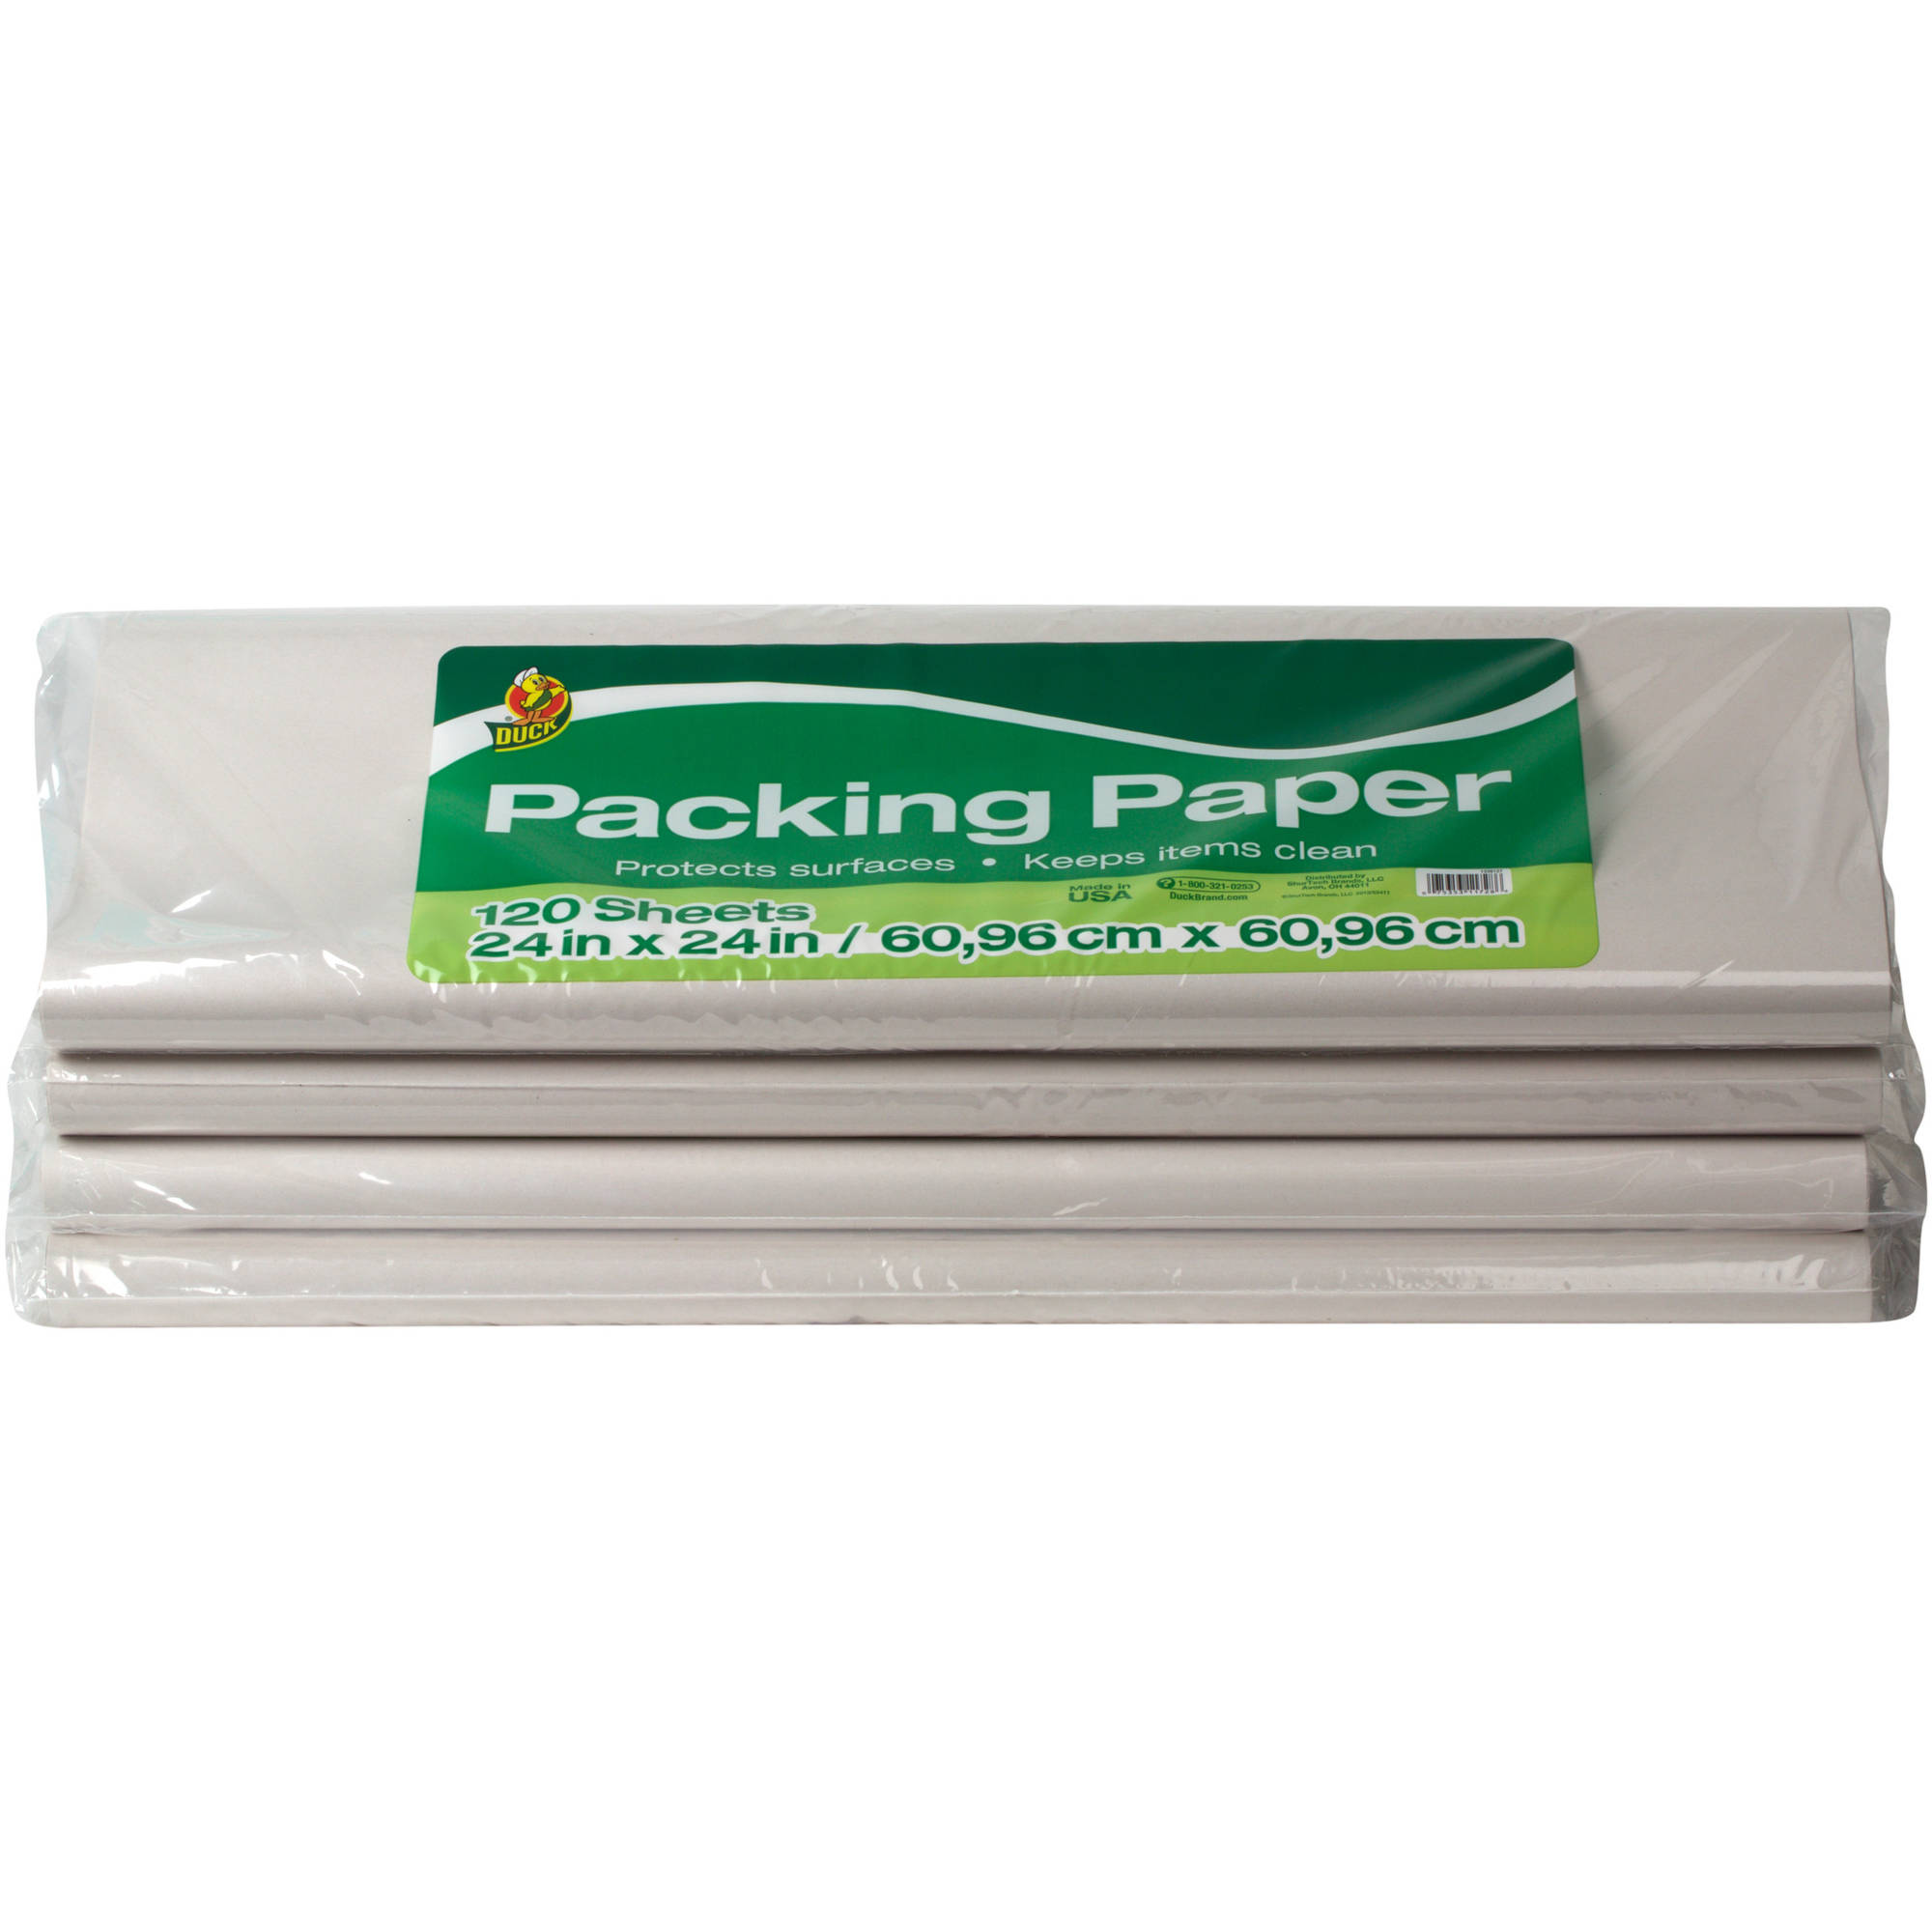 """Duck Brand Packing Paper, White, 480 Sheets, 24"""" x 24"""""""